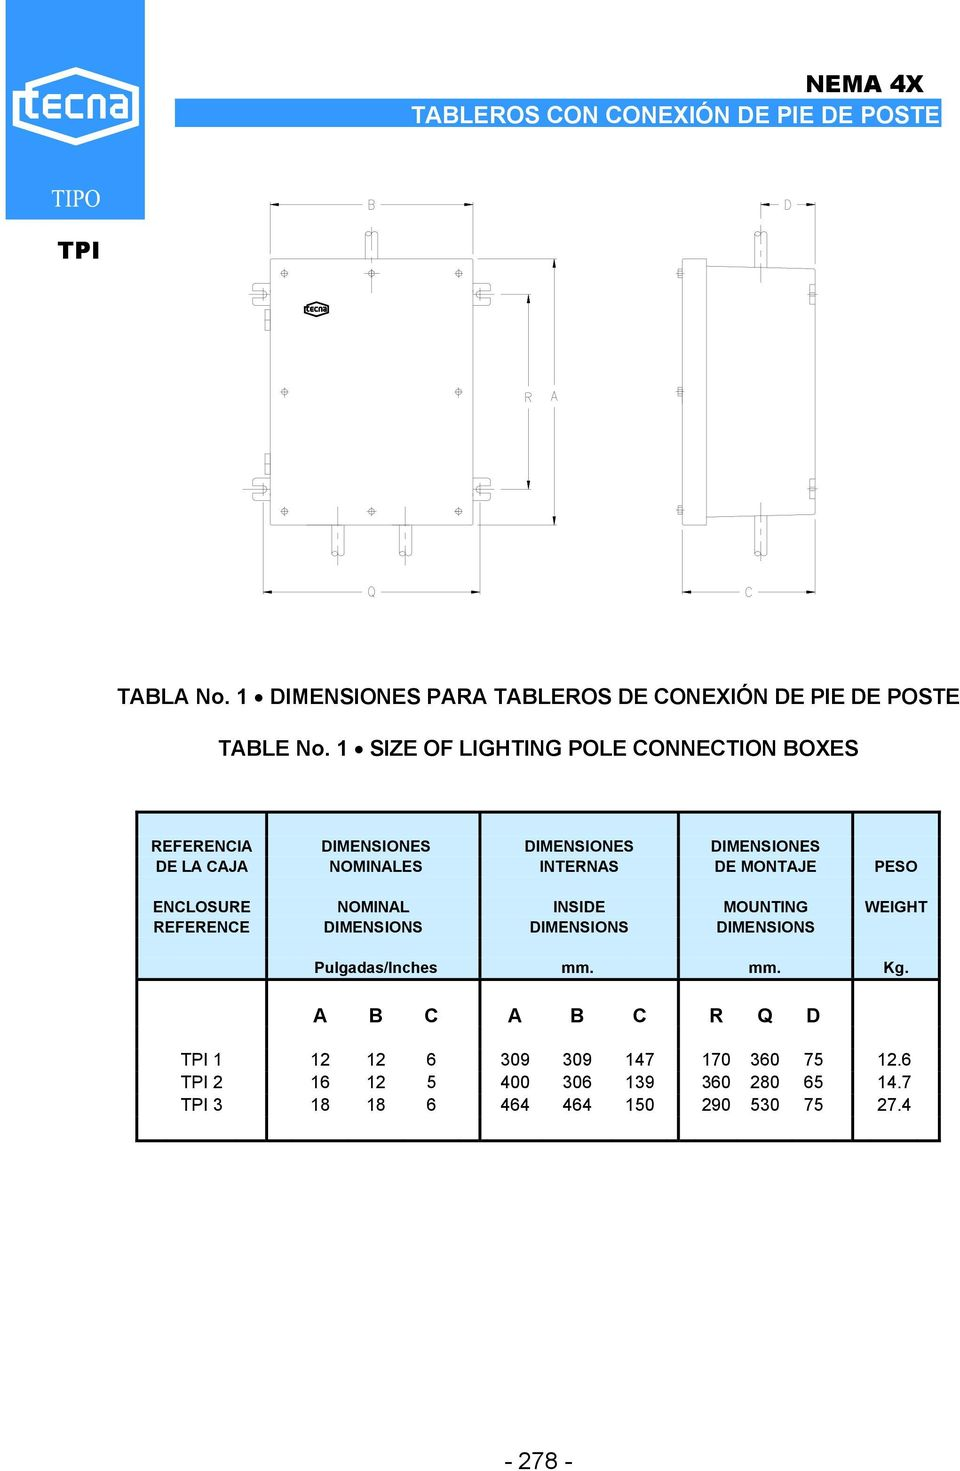 INTERNAS DE MONTAJE PESO ENCLOSURE NOMINAL INSIDE MOUNTING WEIGHT REFERENCE DIMENSIONS DIMENSIONS DIMENSIONS